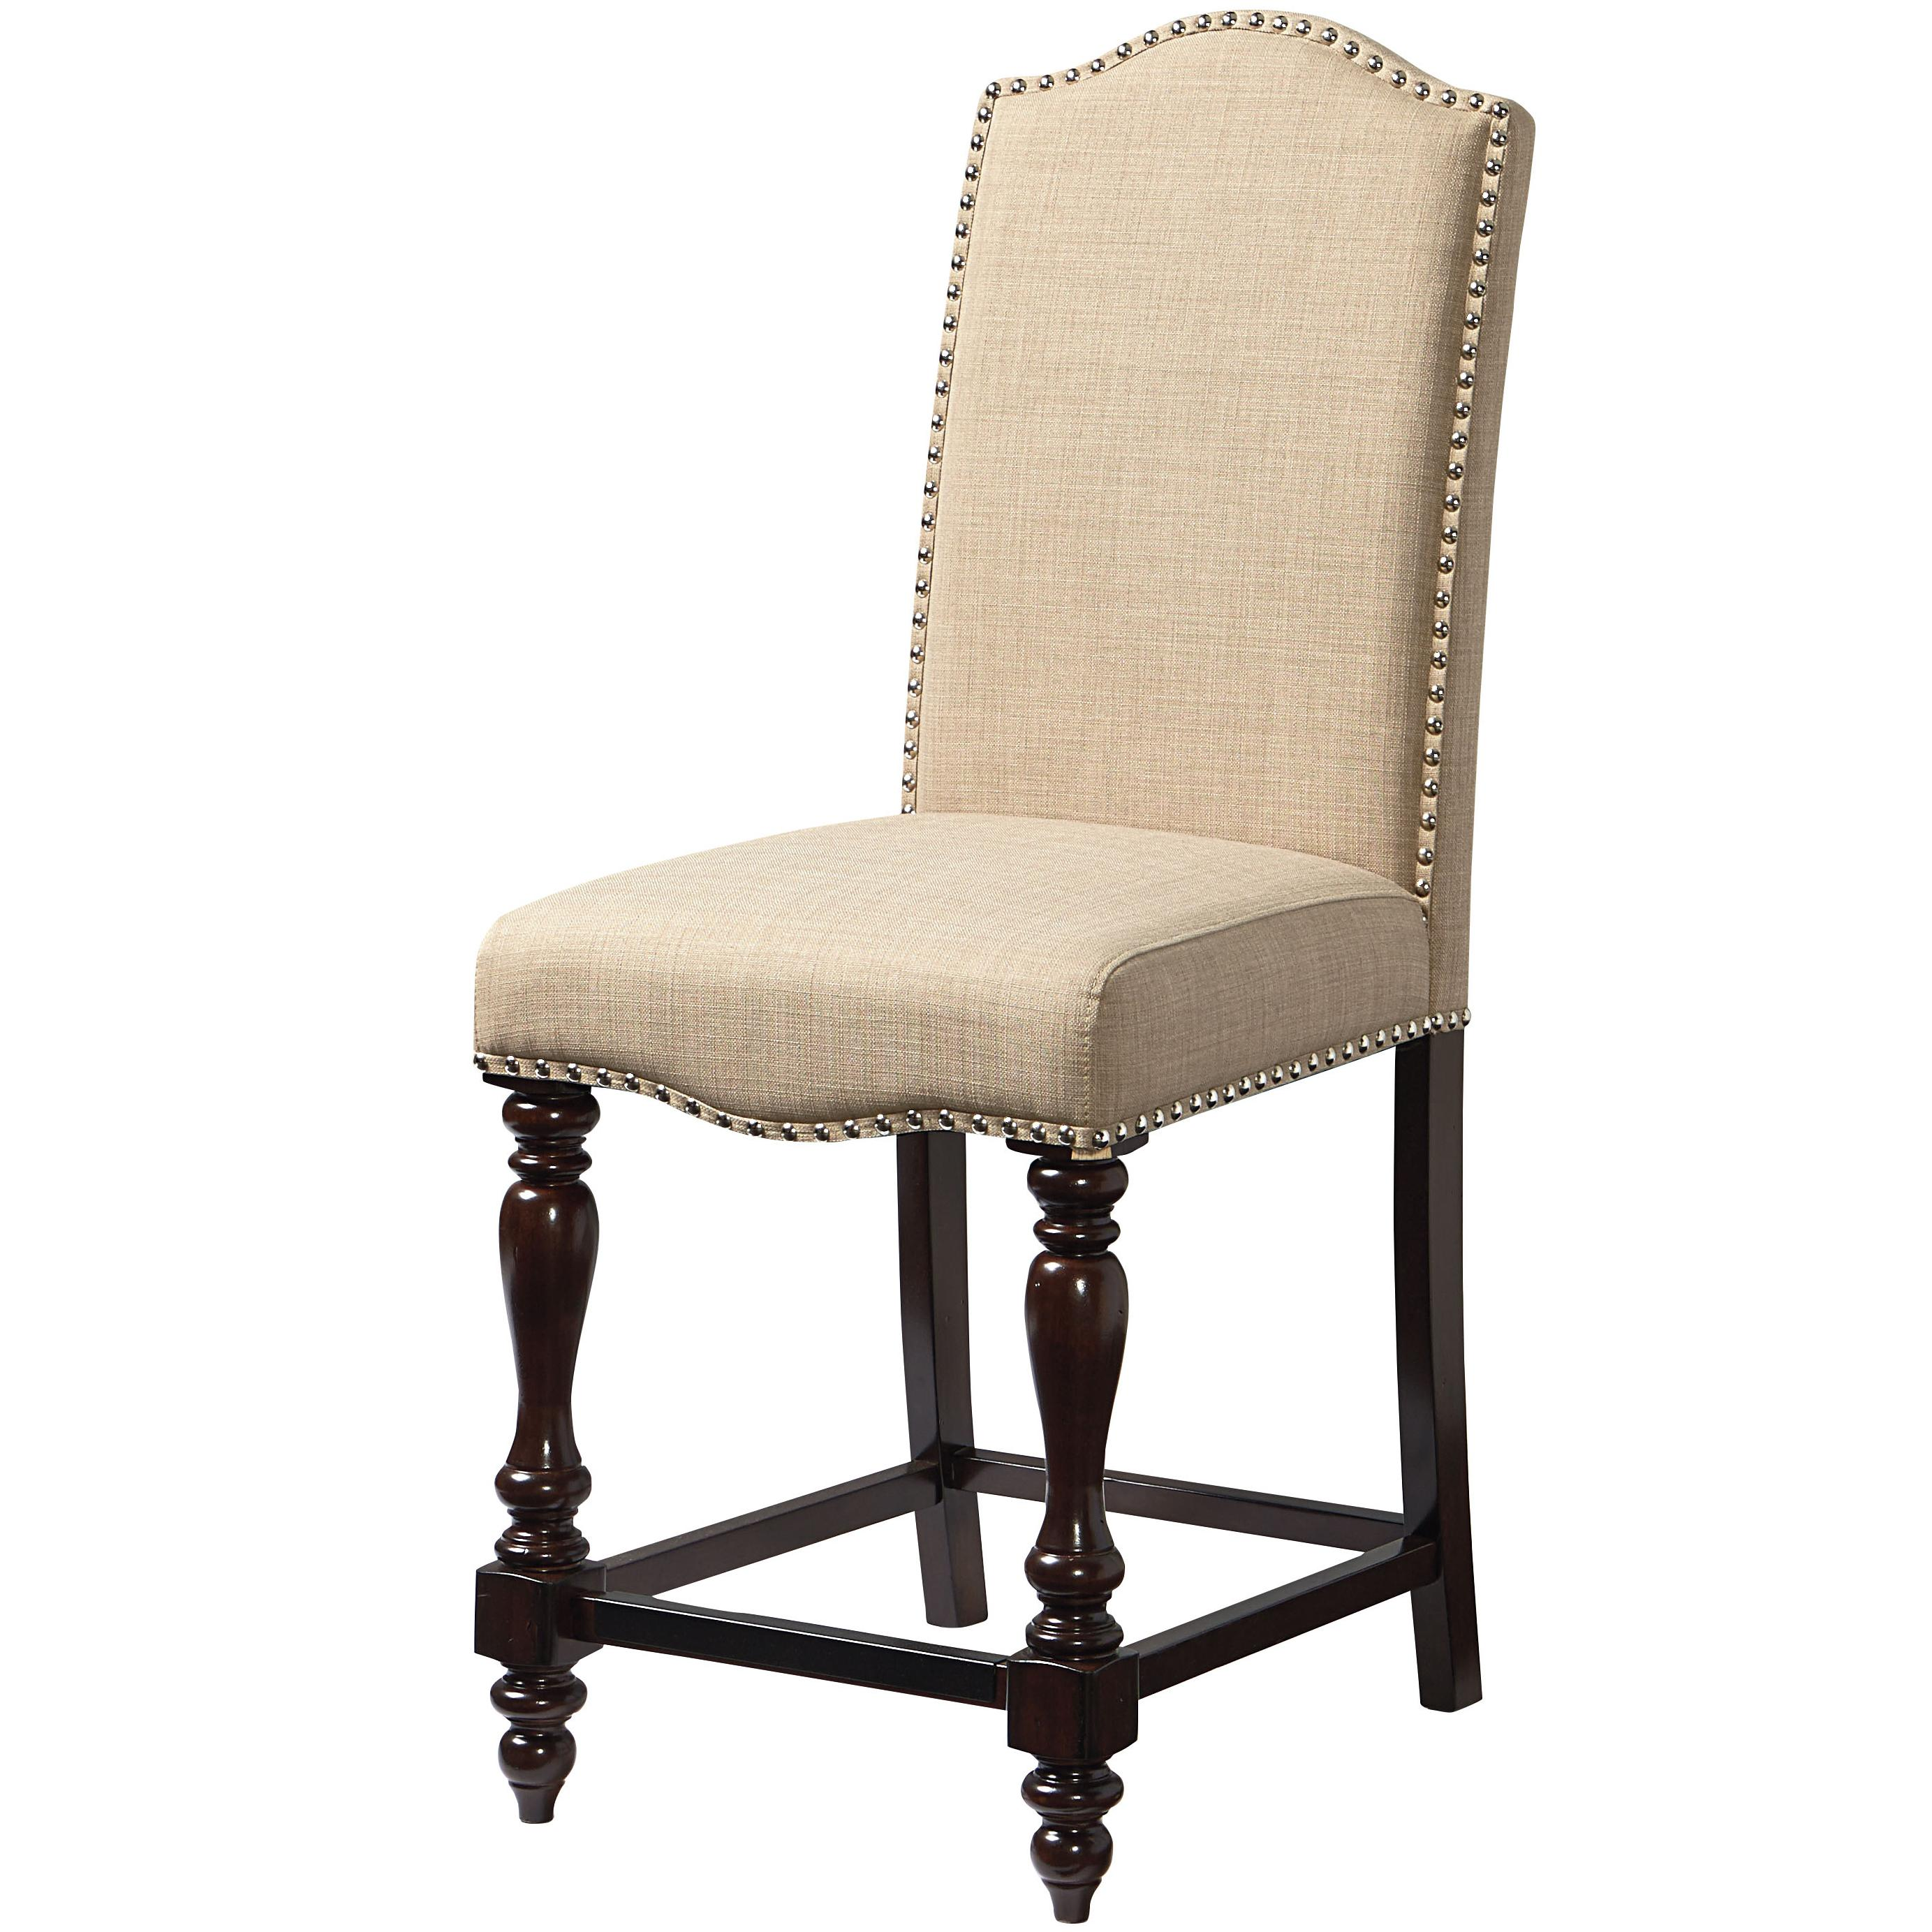 Bar Stool Chair Standard Furniture Mcgregor 17737 Upholstered Counter